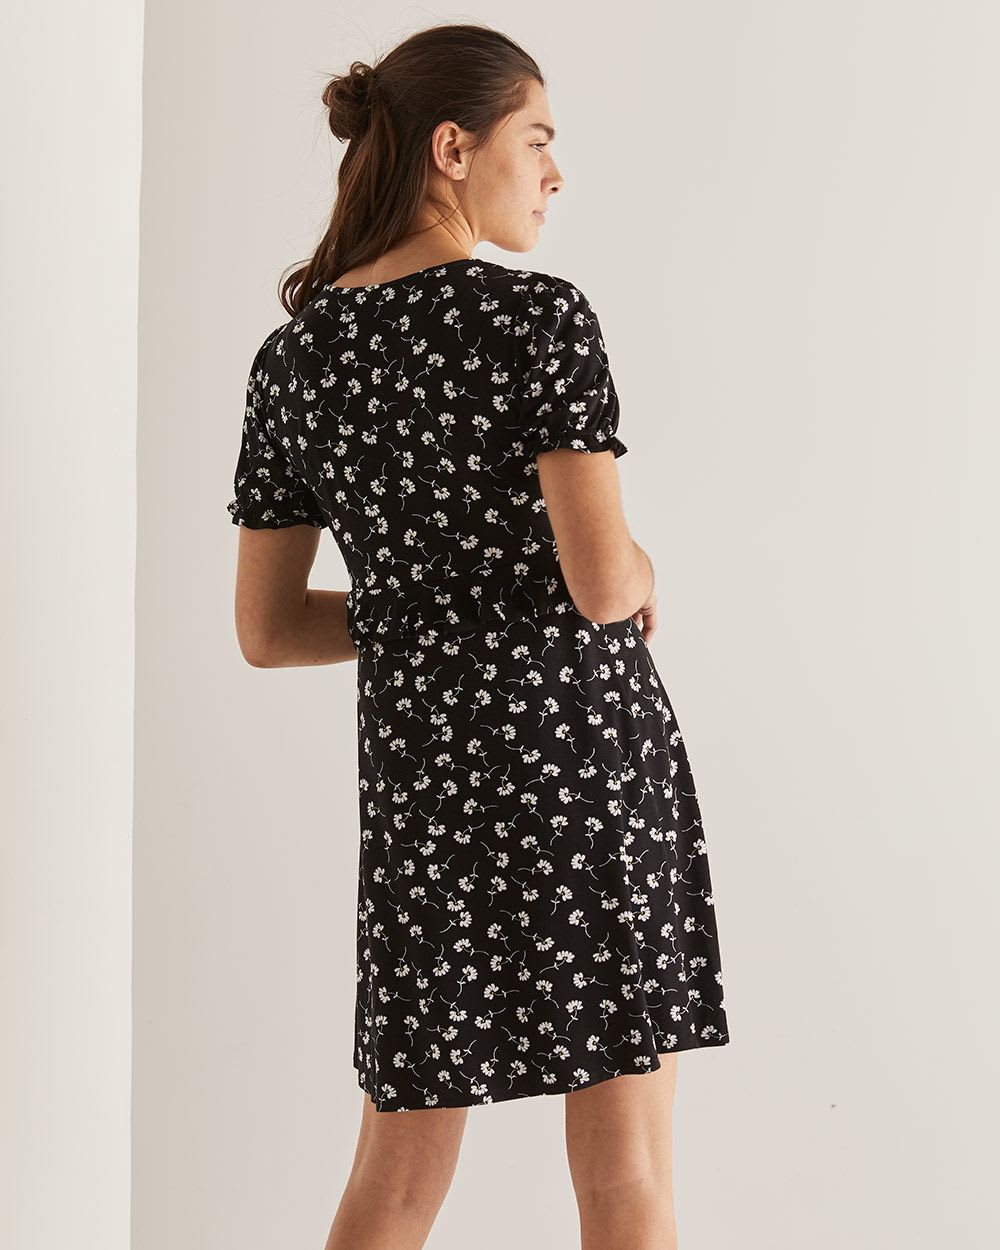 Floral Print Ruffle Swing Dress